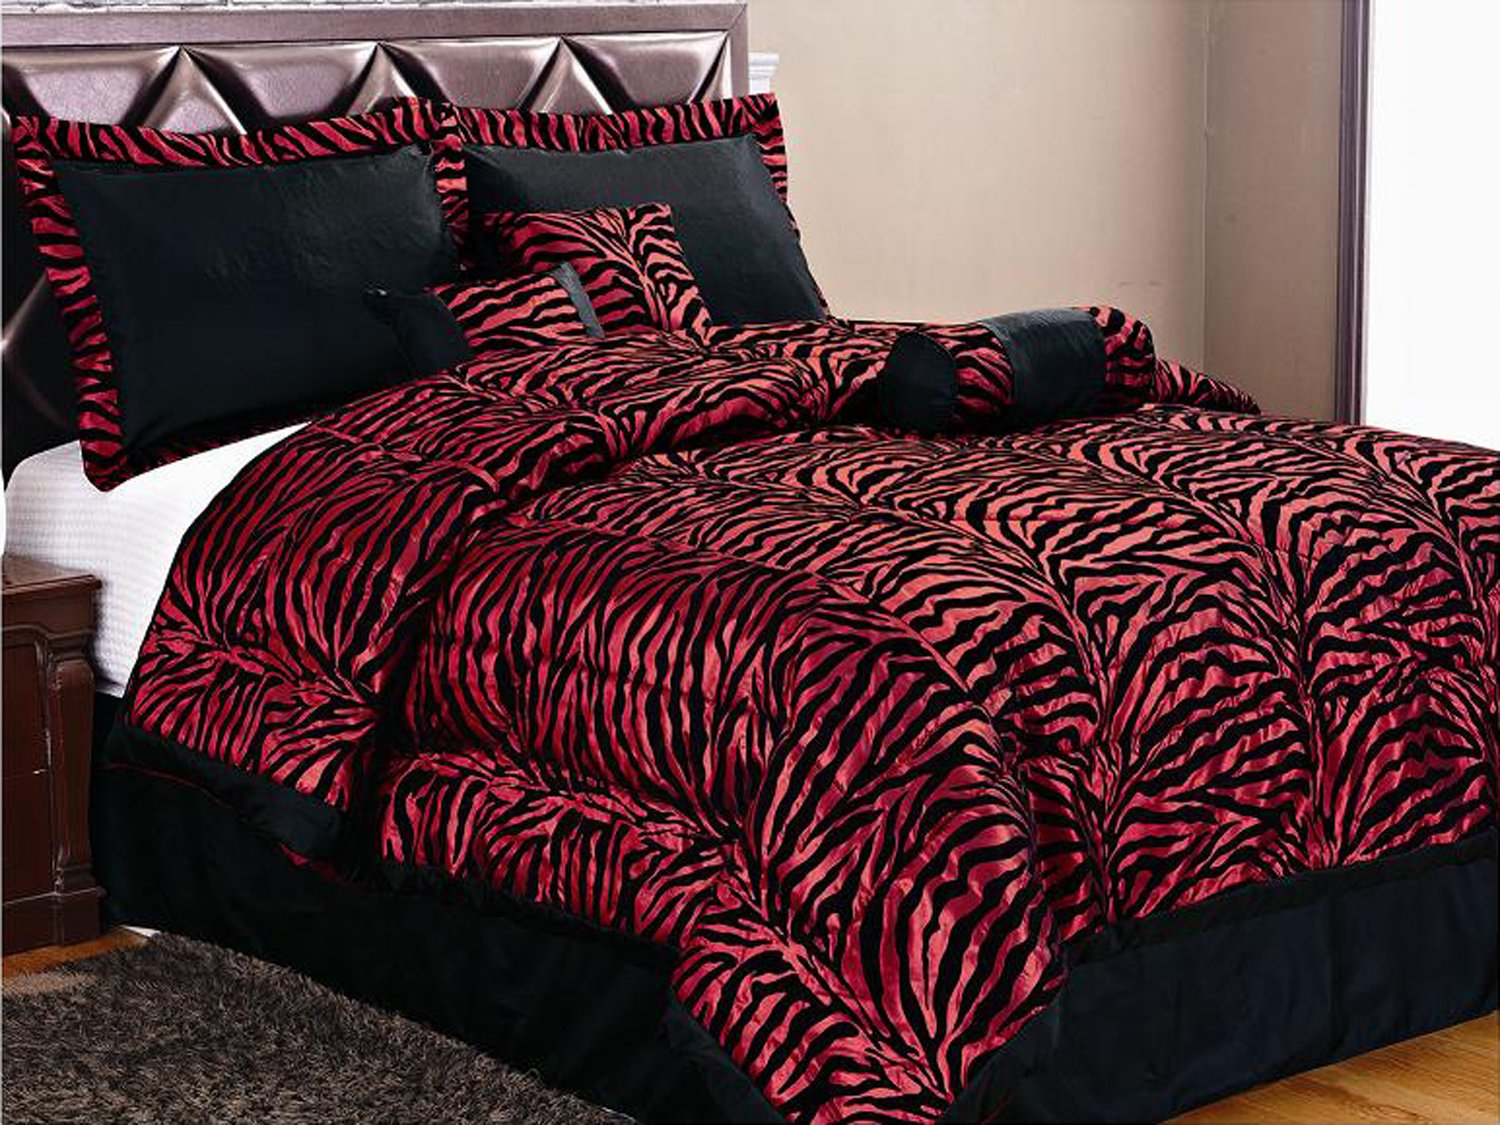 Black and red bedding sets - Black and red bedding sets ...